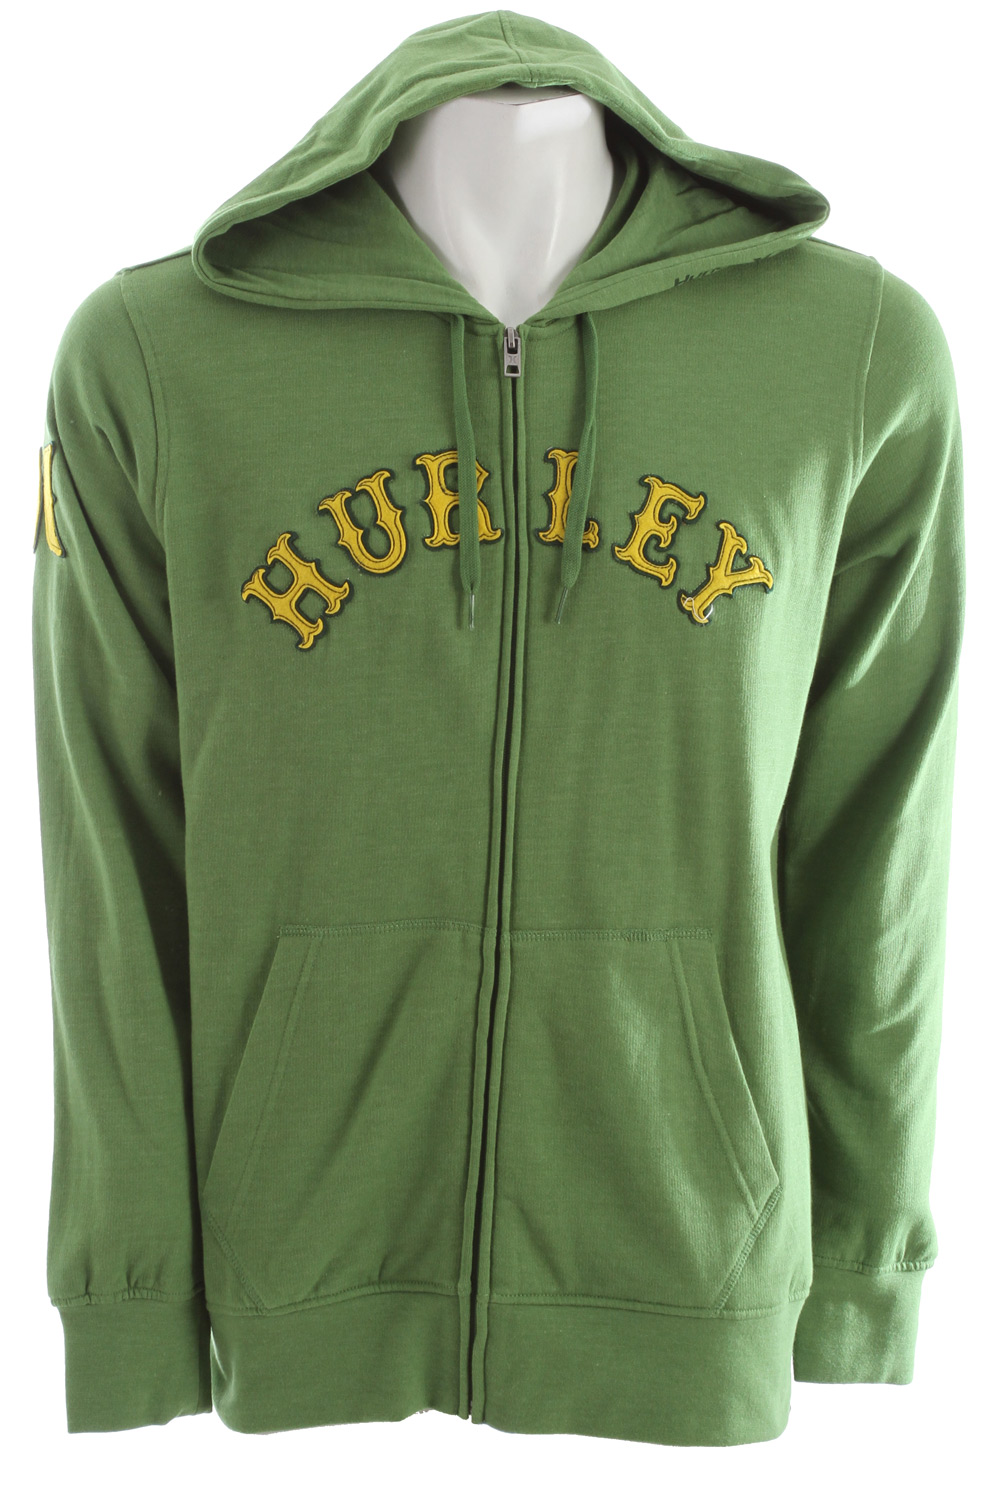 Surf Key Features of the Hurley Shiloh Zip Hoodie: Regular Fit 220gm Zip Fleece; 60% Cotton/40% Polyester Woven icon loop label and felt applique branding on chest and sleeve. - $38.95